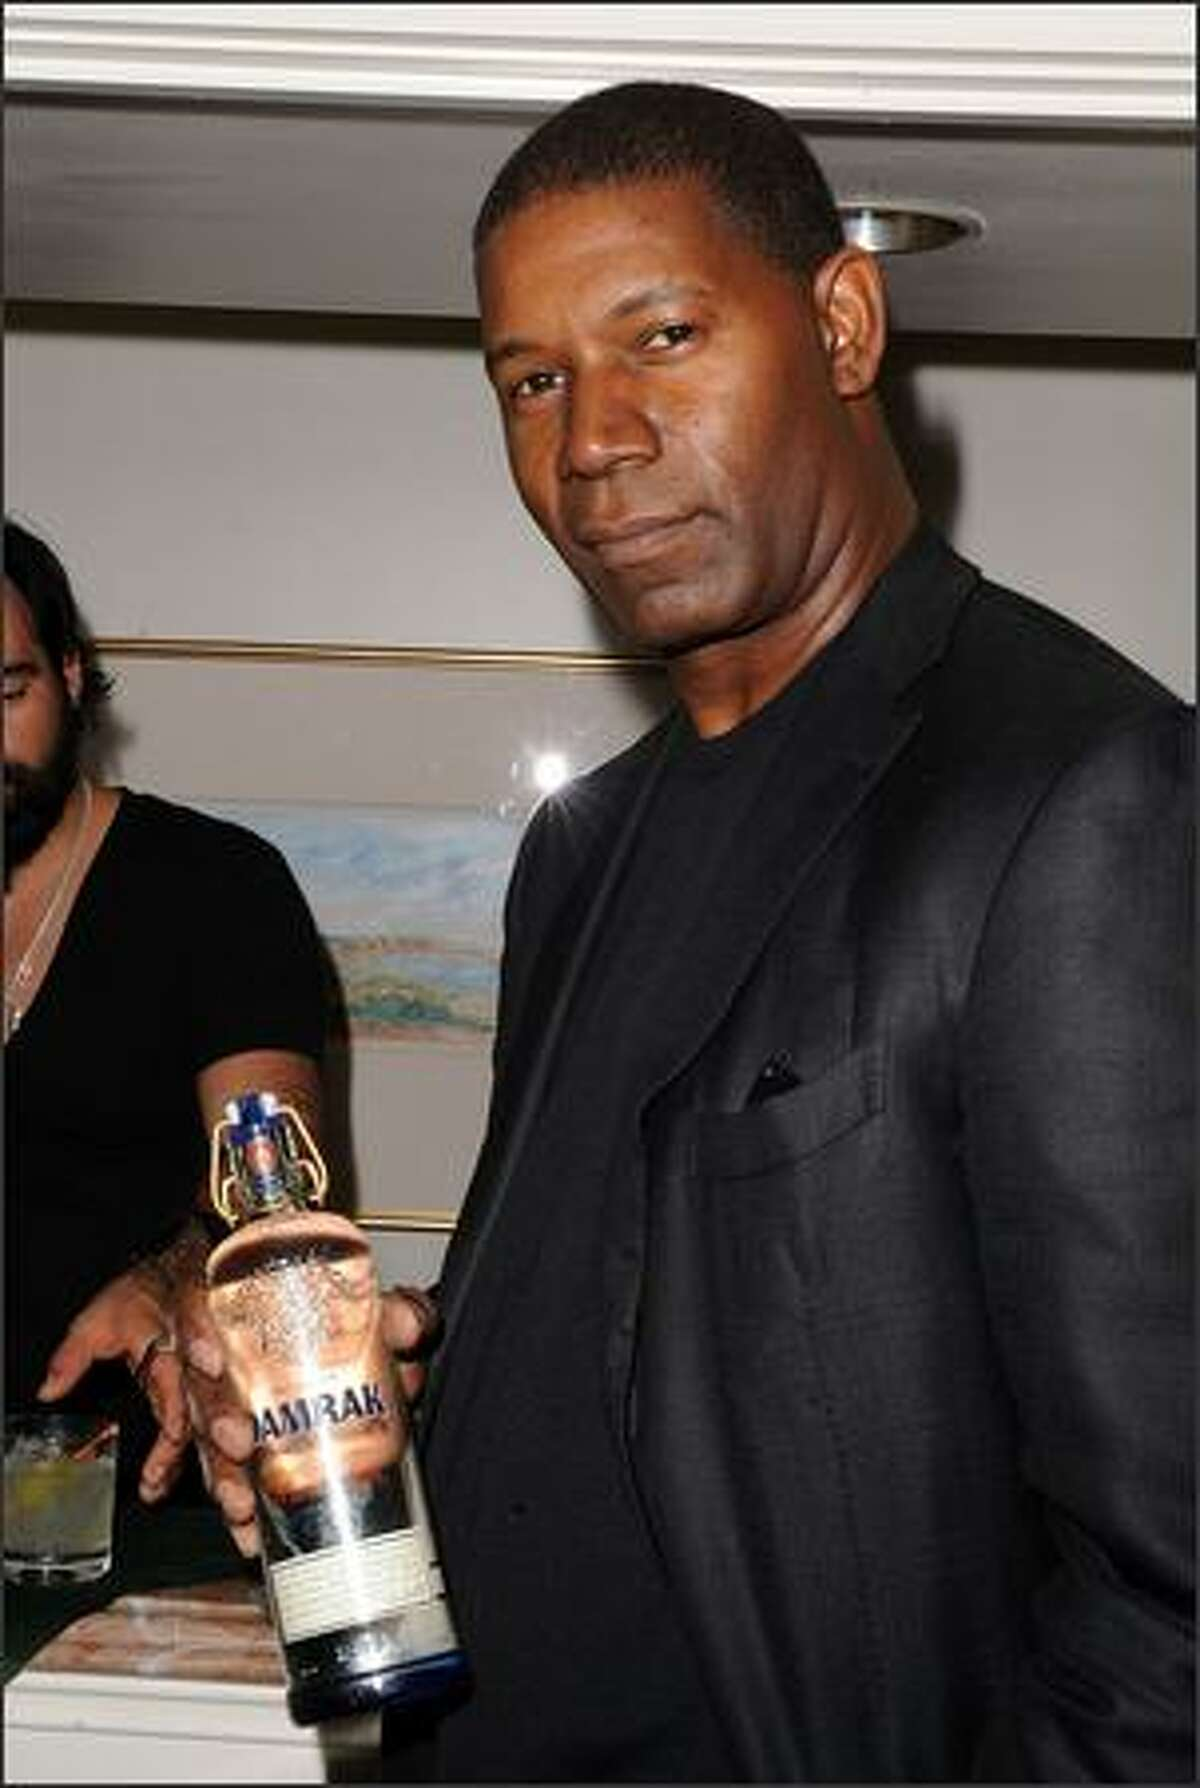 Actor Dennis Haysbert arrives at the Pre-Golden Globes DPA Gifting Lounge hosted by Nathalie Dubois held at the The Peninsula Hotel in Beverly Hills, Calif.